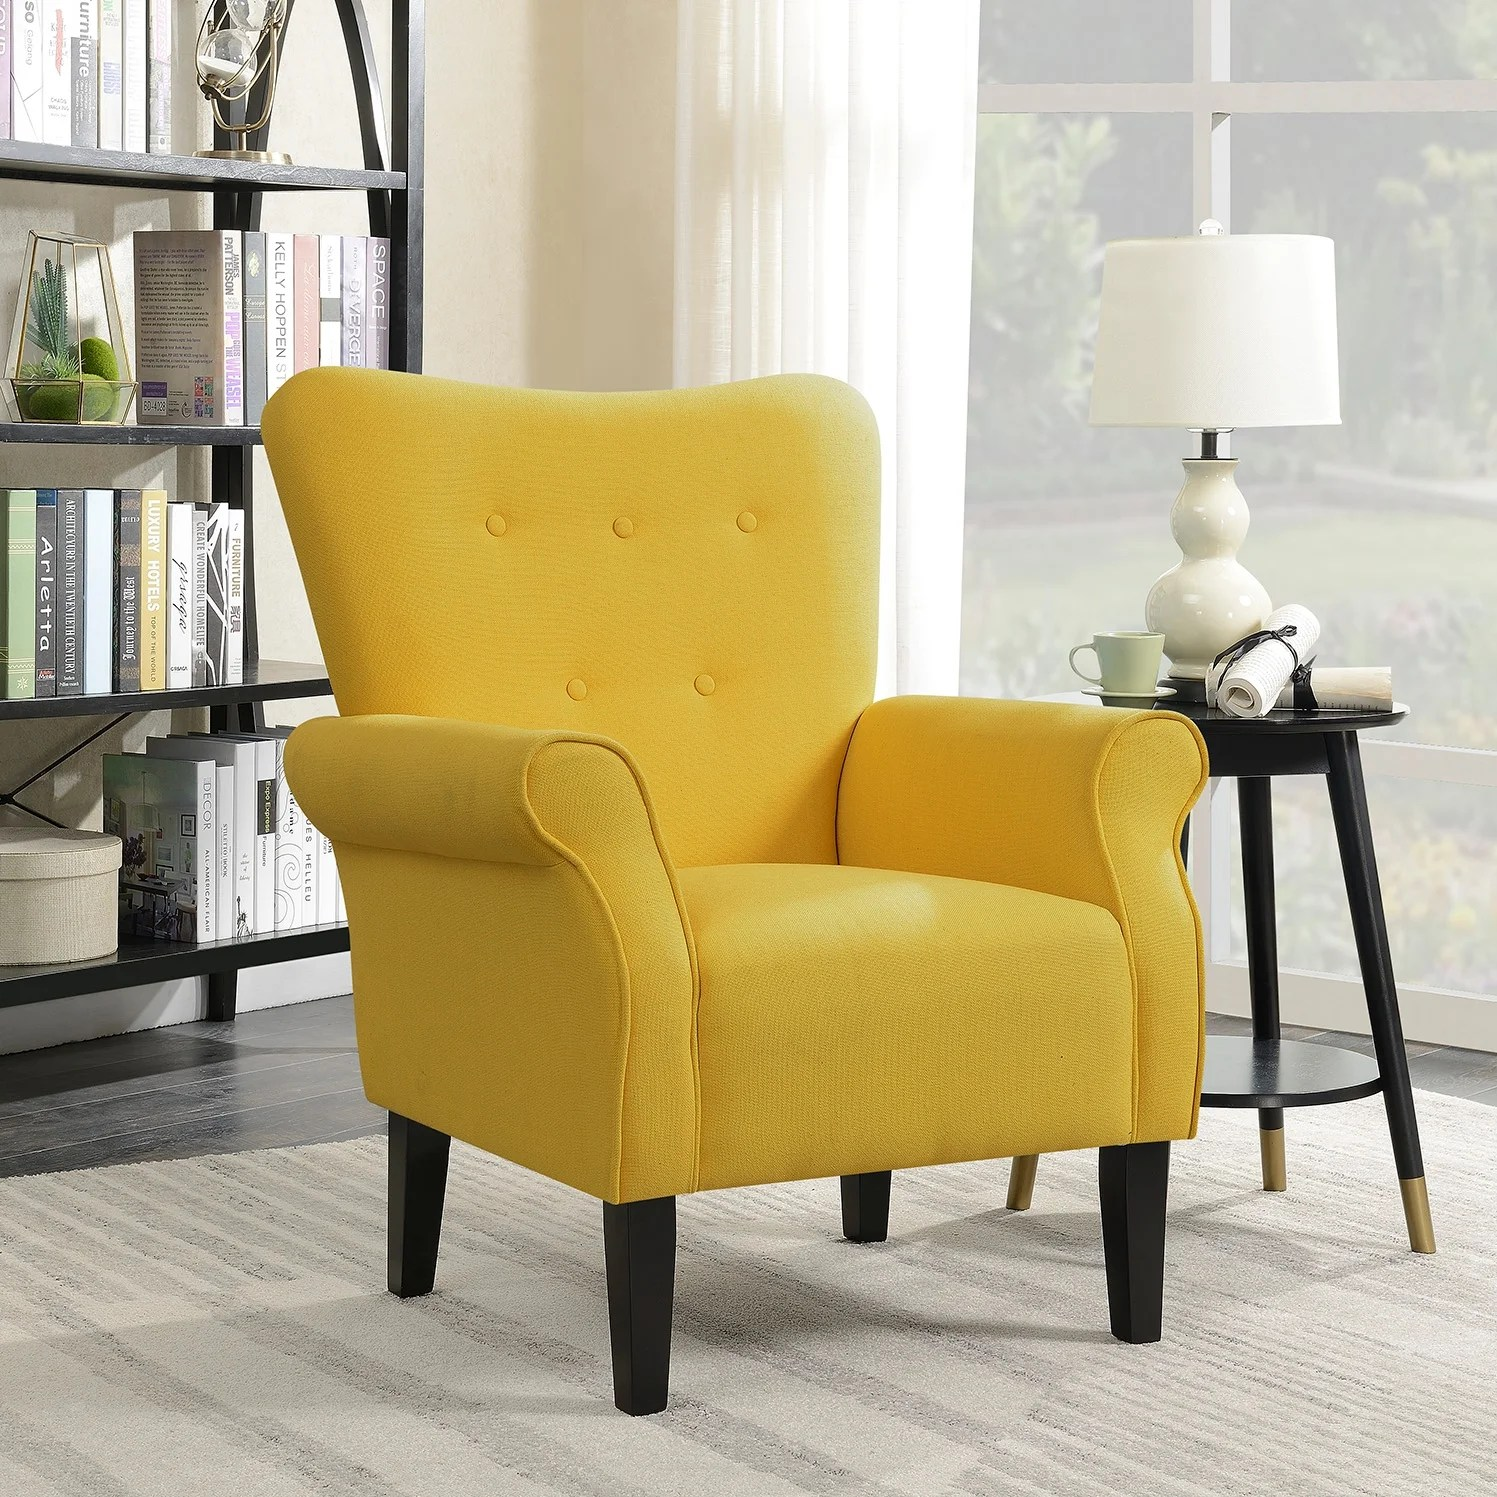 Yellow Decor For Living Room Belleze Modern Linen Accent Chair Armrest Living Room W Wood Leg Citrine Yellow